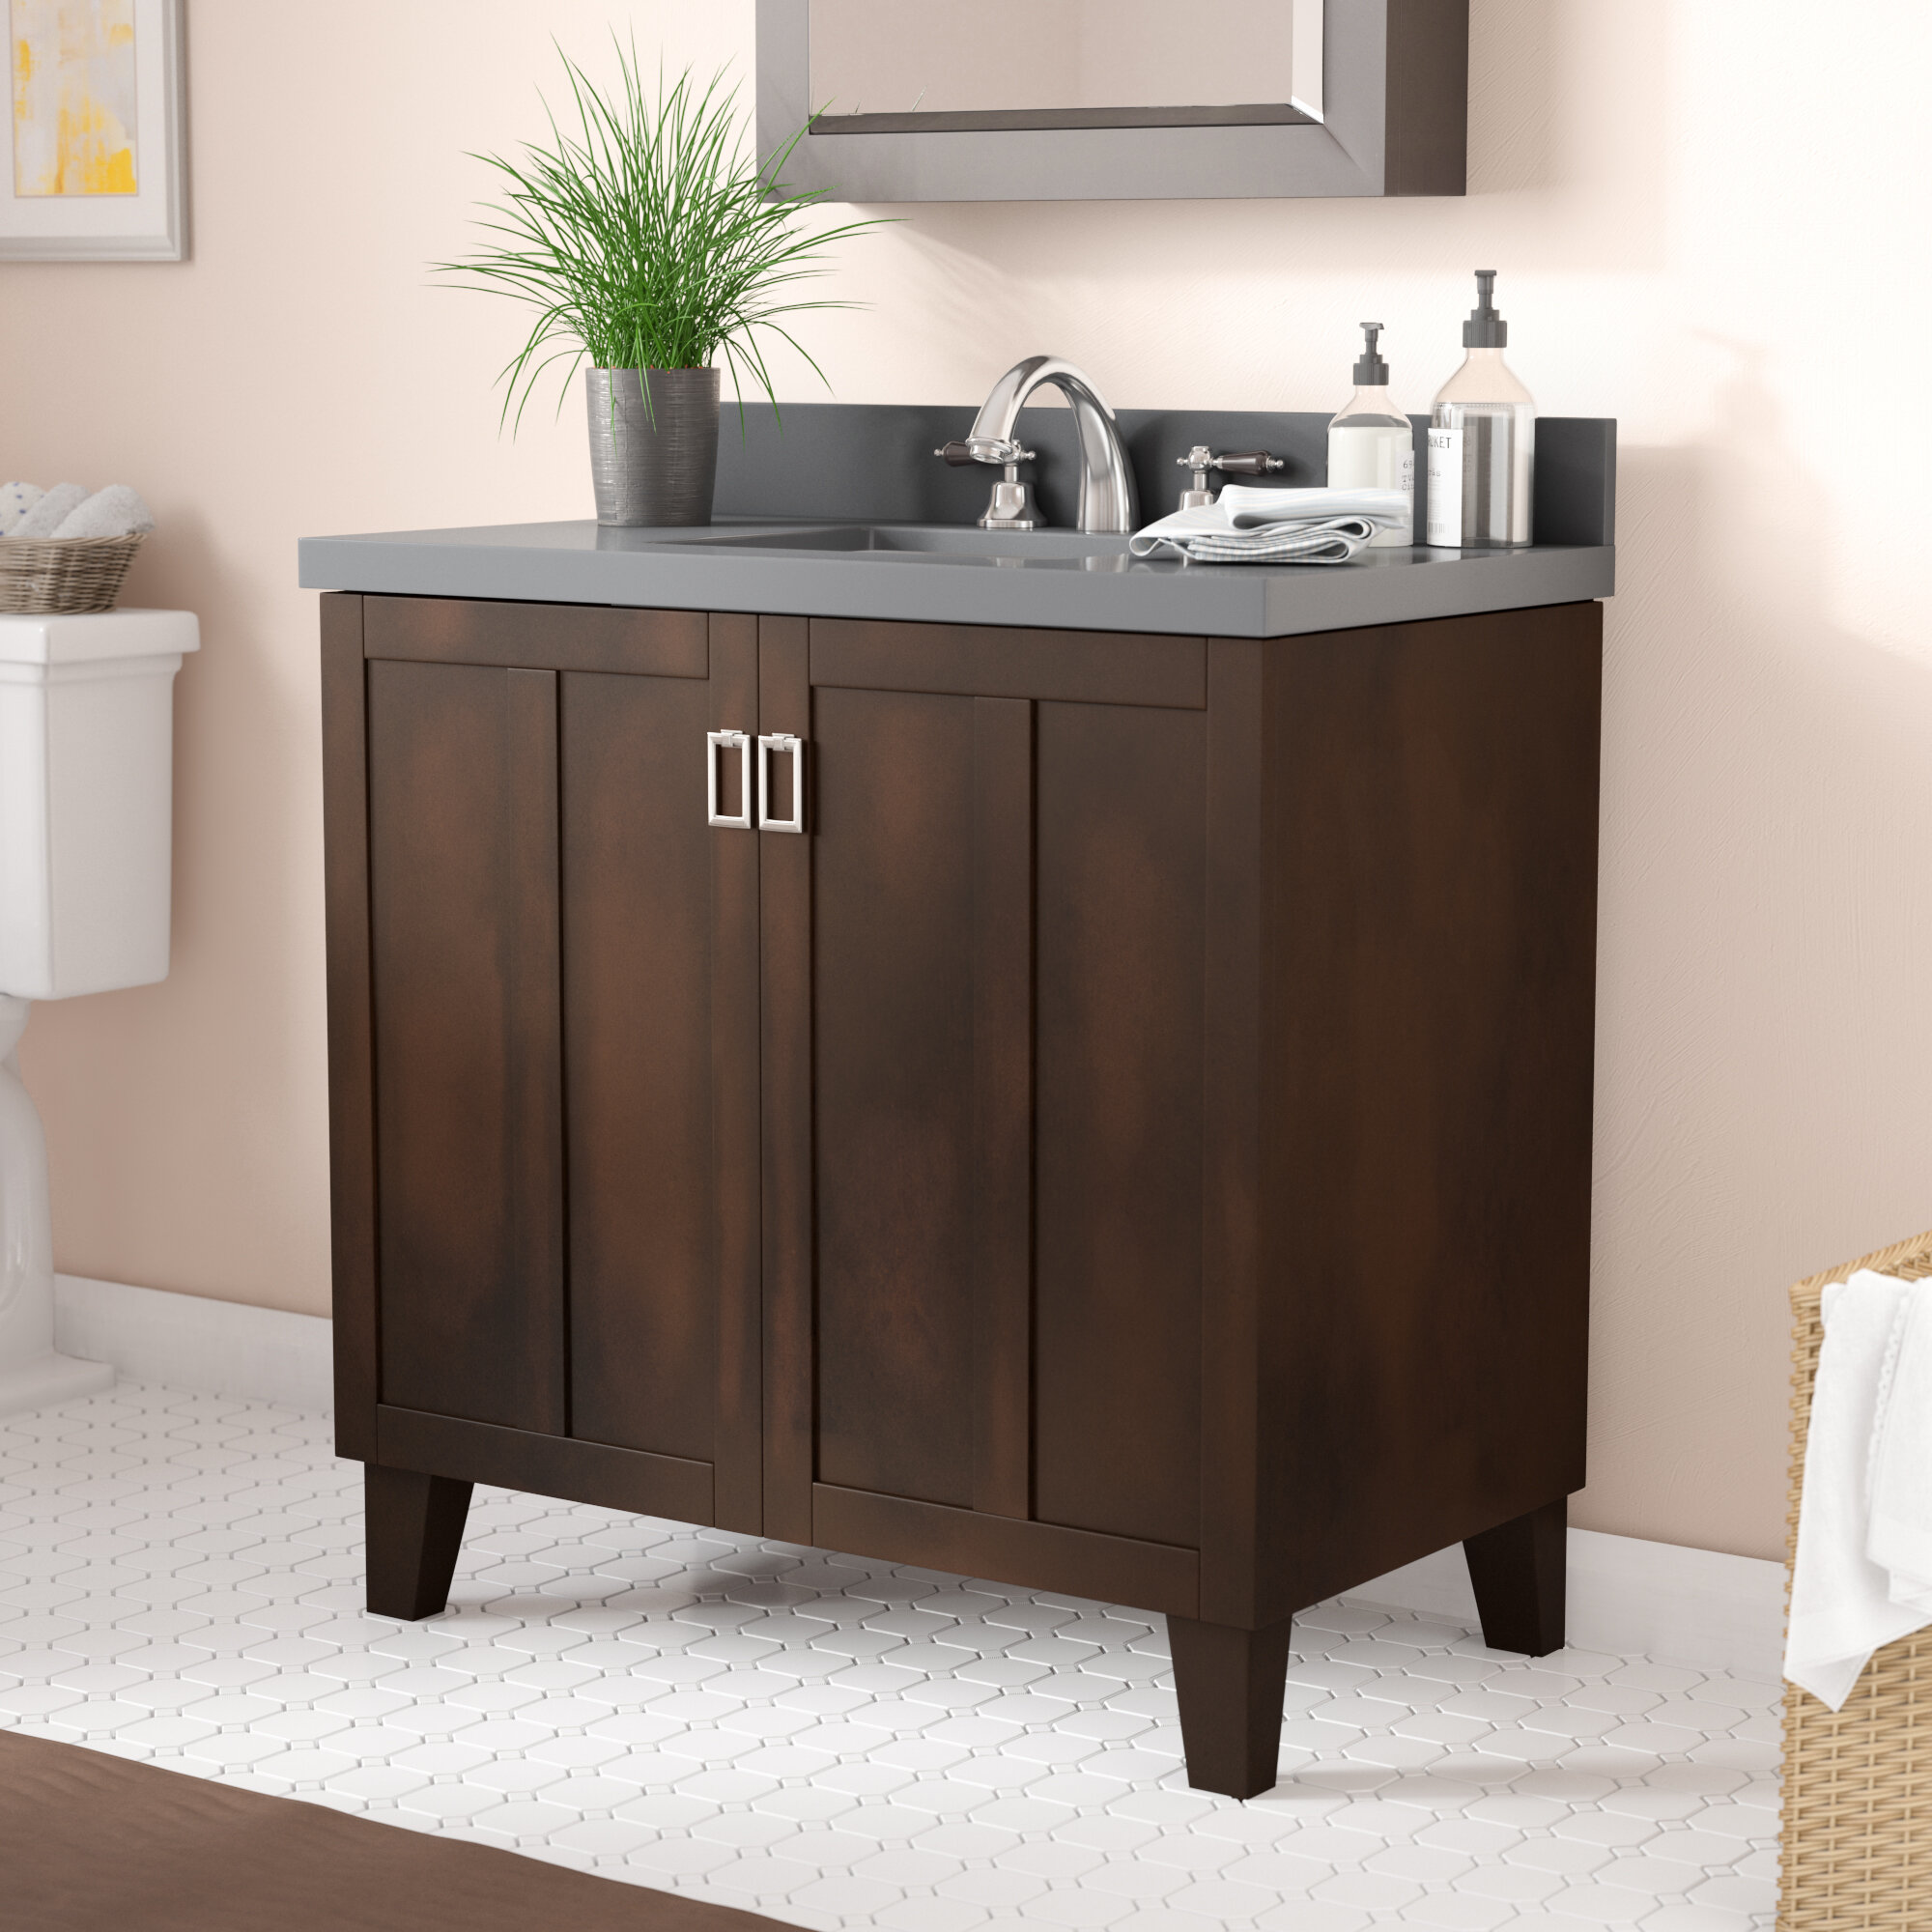 of new shower bathroom cabinet room drawers lowes vanity idea in with inch home depot